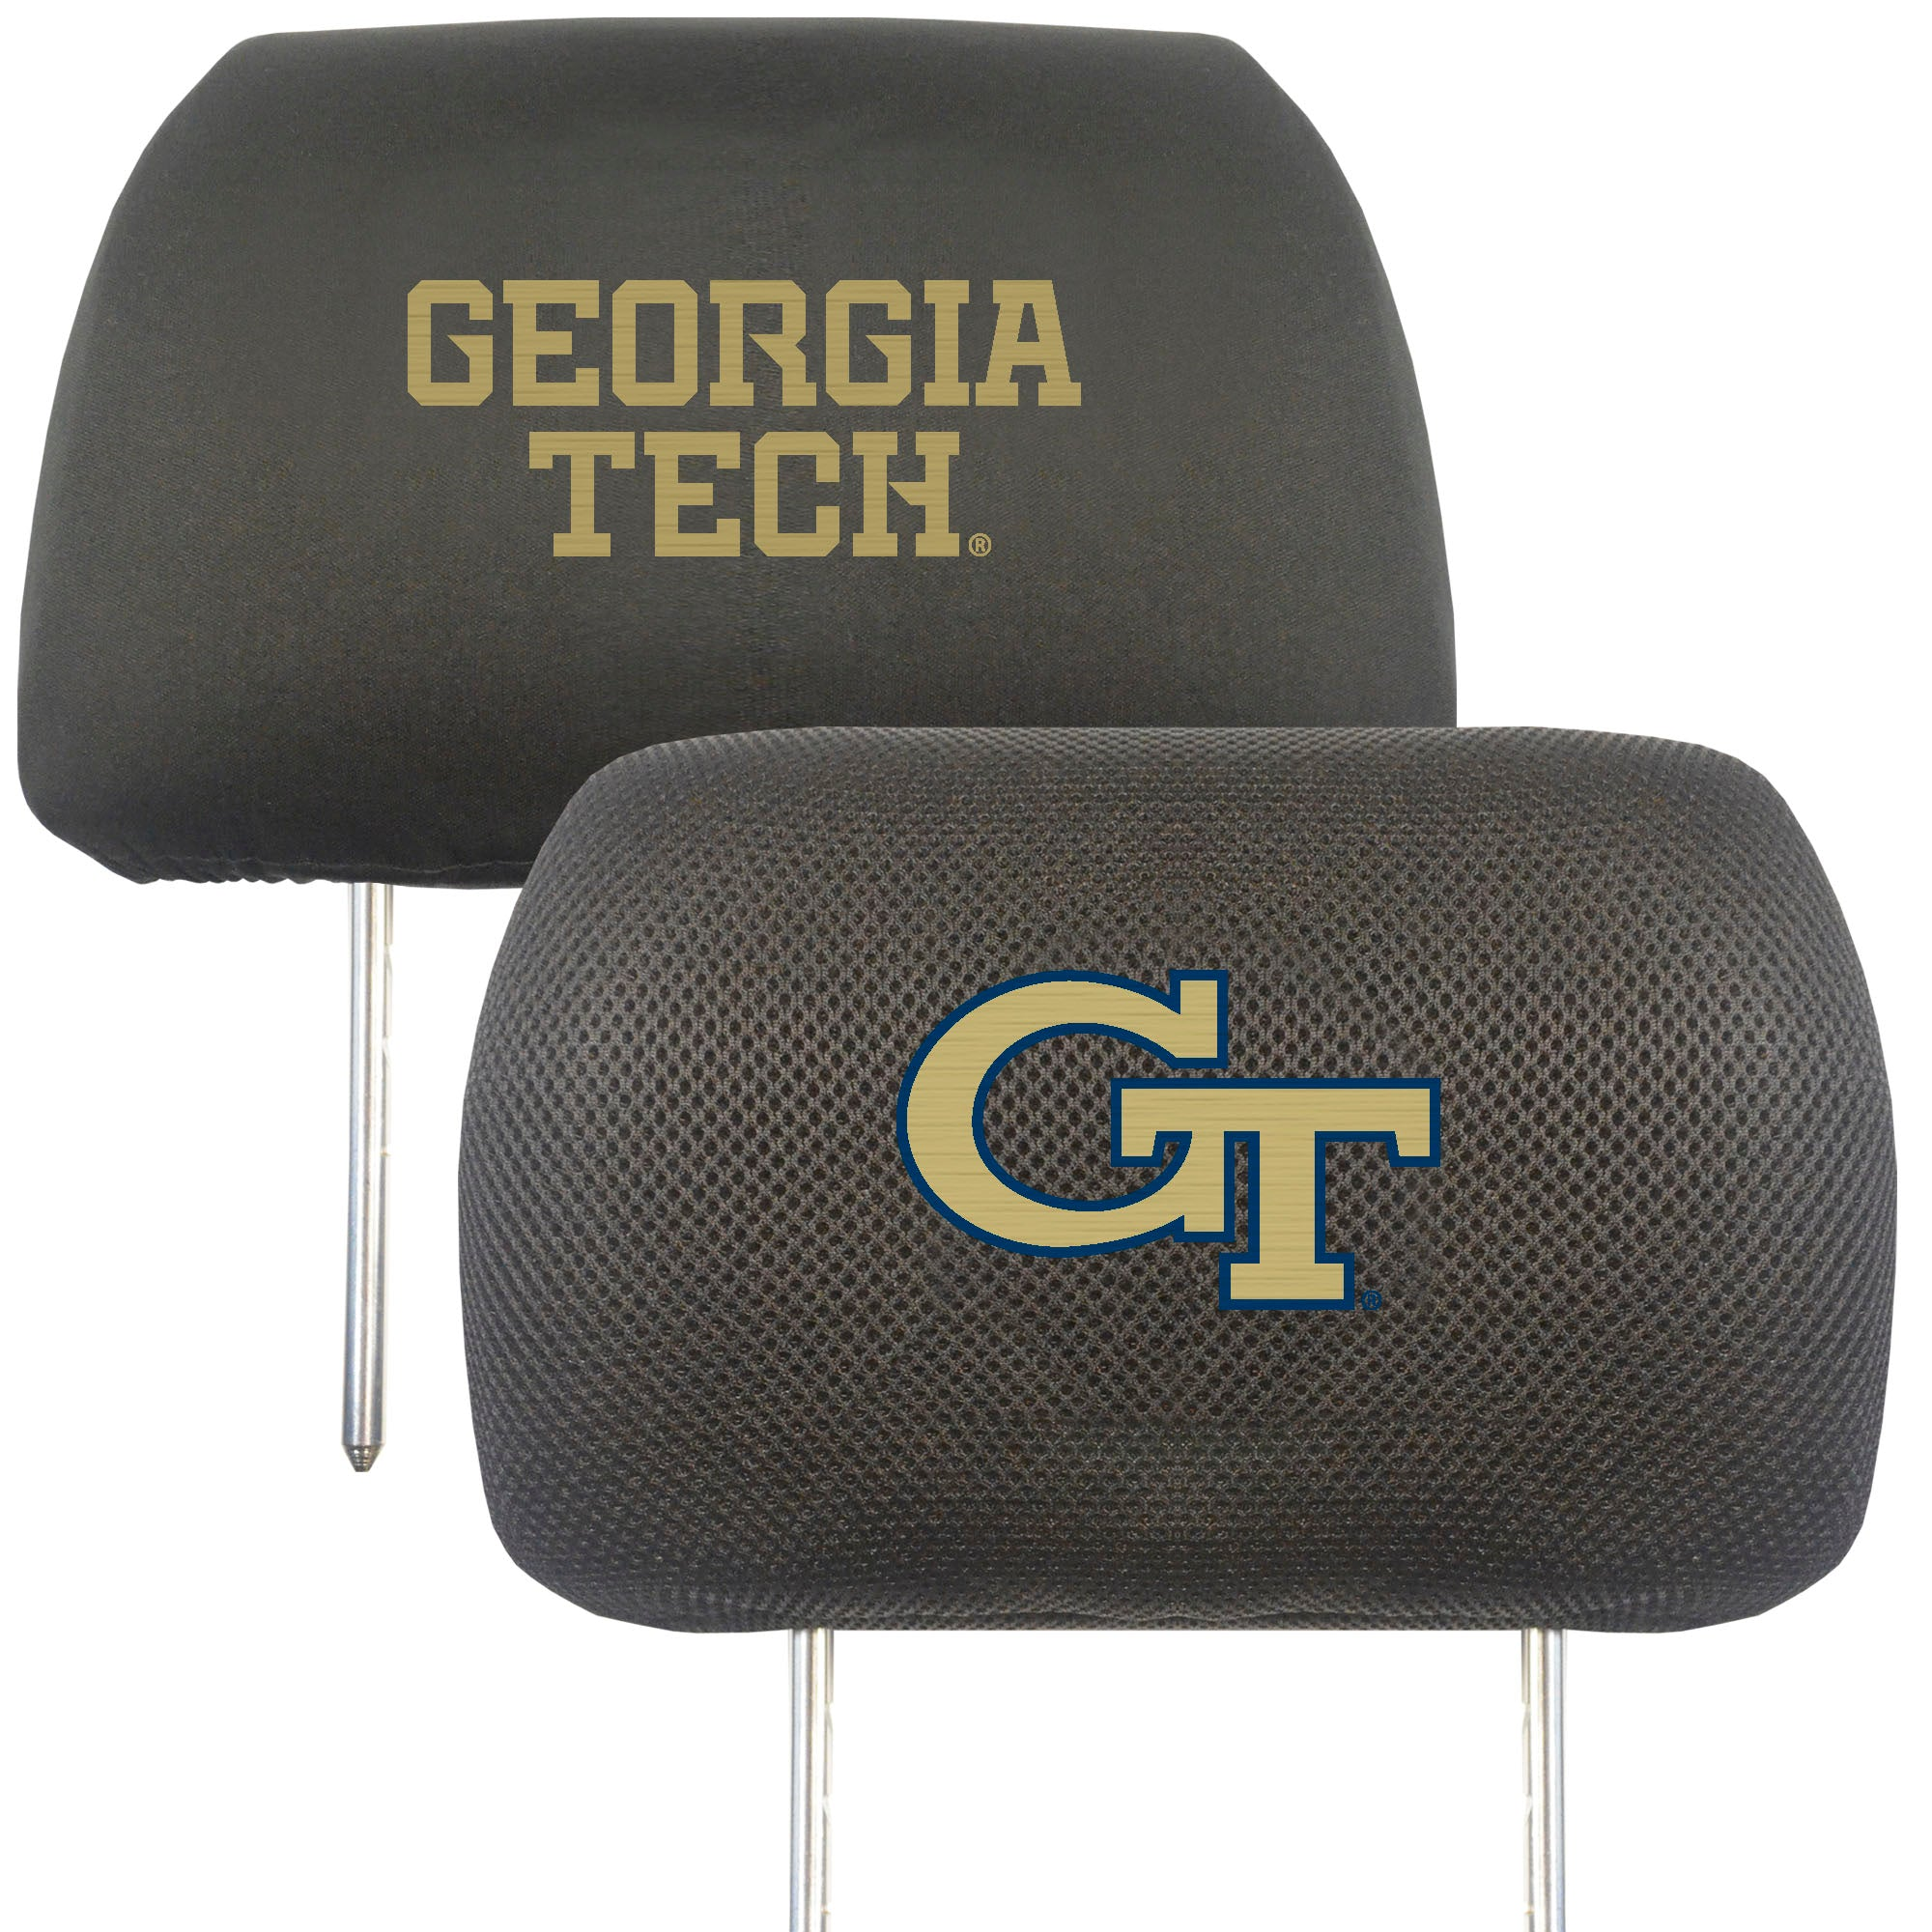 "Georgia Tech Head Rest Cover 10""x13"""